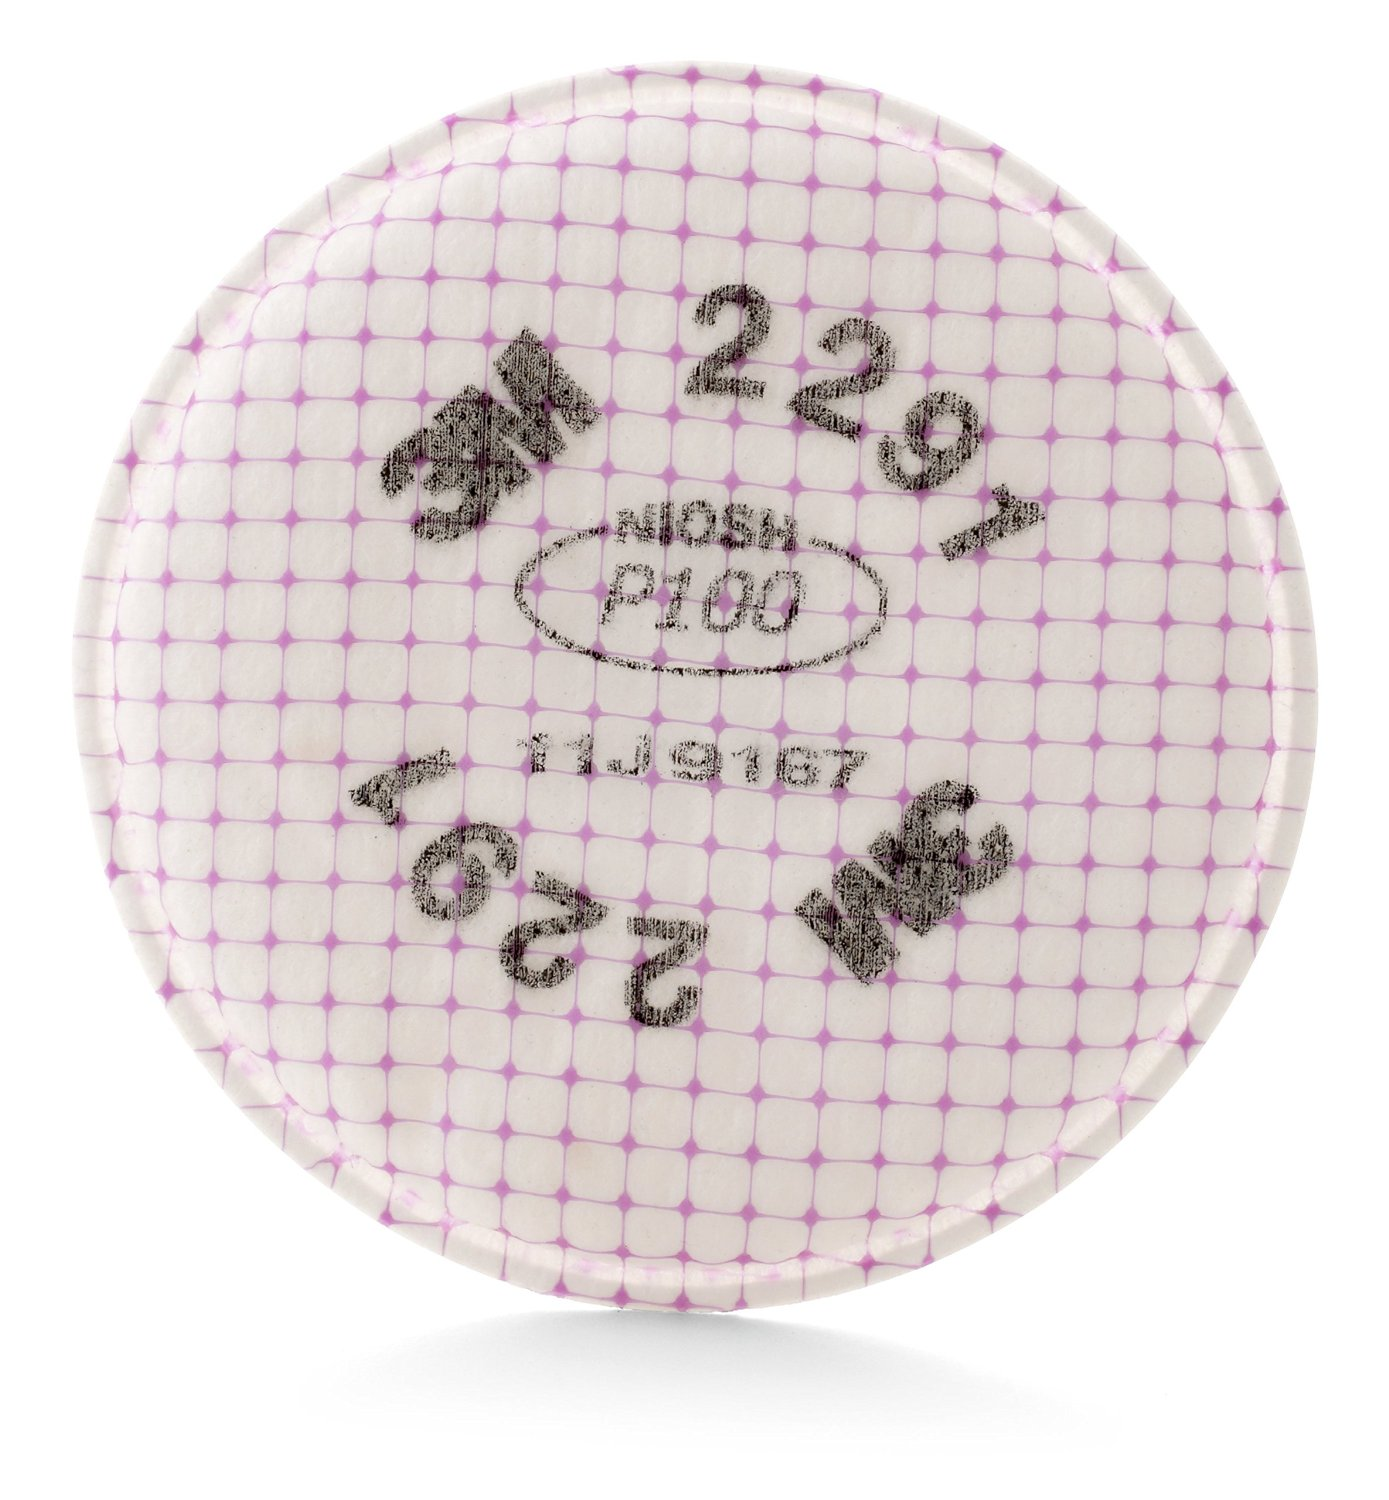 3M 17170 Advanced Particulate Filter 2291, P100 Respiratory Protection (Pack of 2)